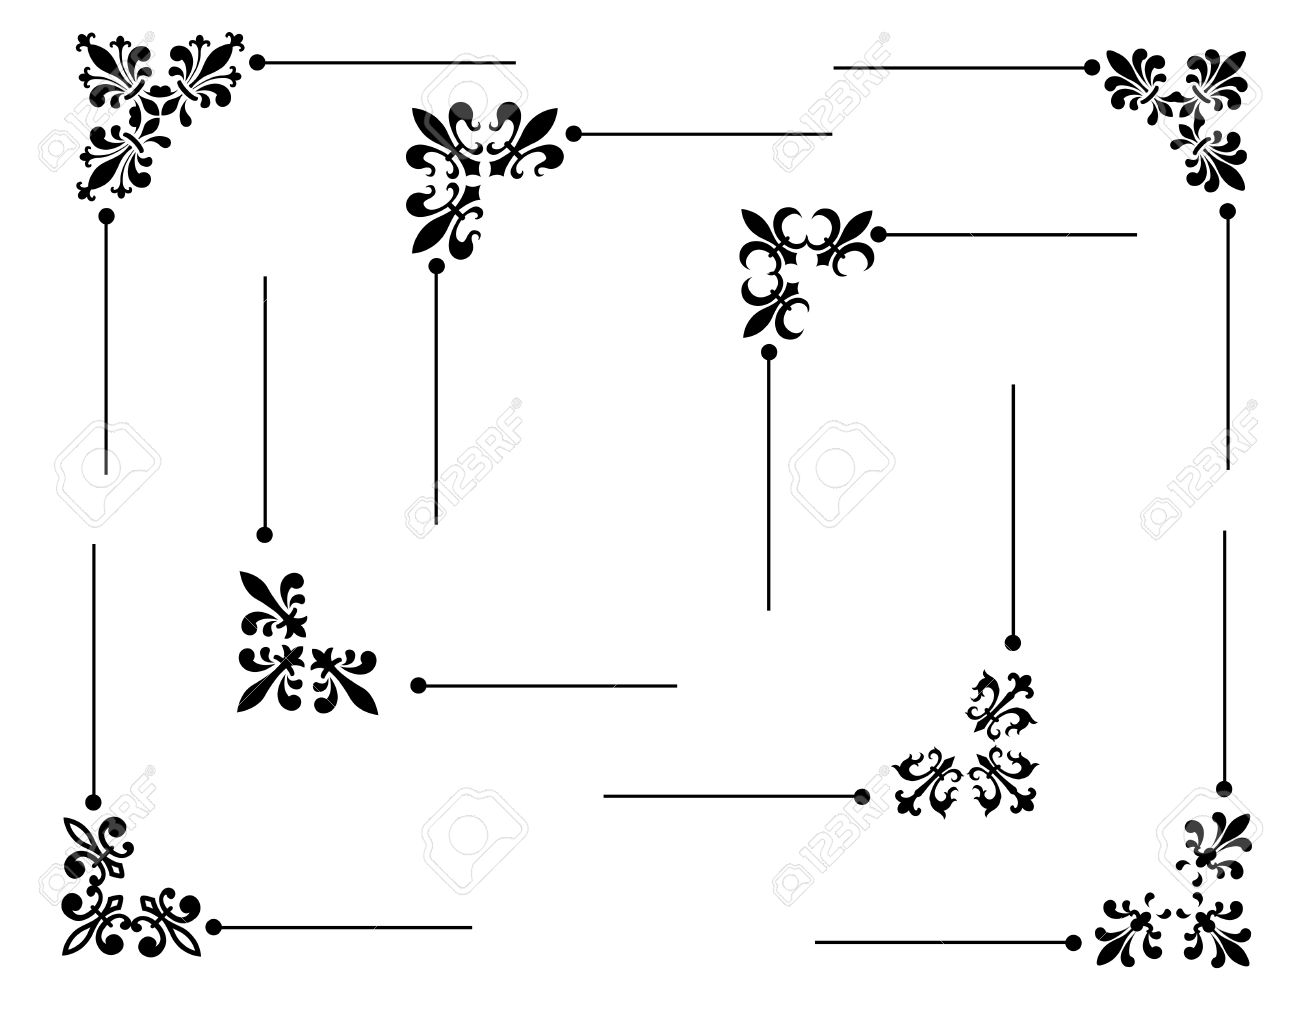 hight resolution of clip art collection of different decorative fleur de lis page corners edges collection stock vector